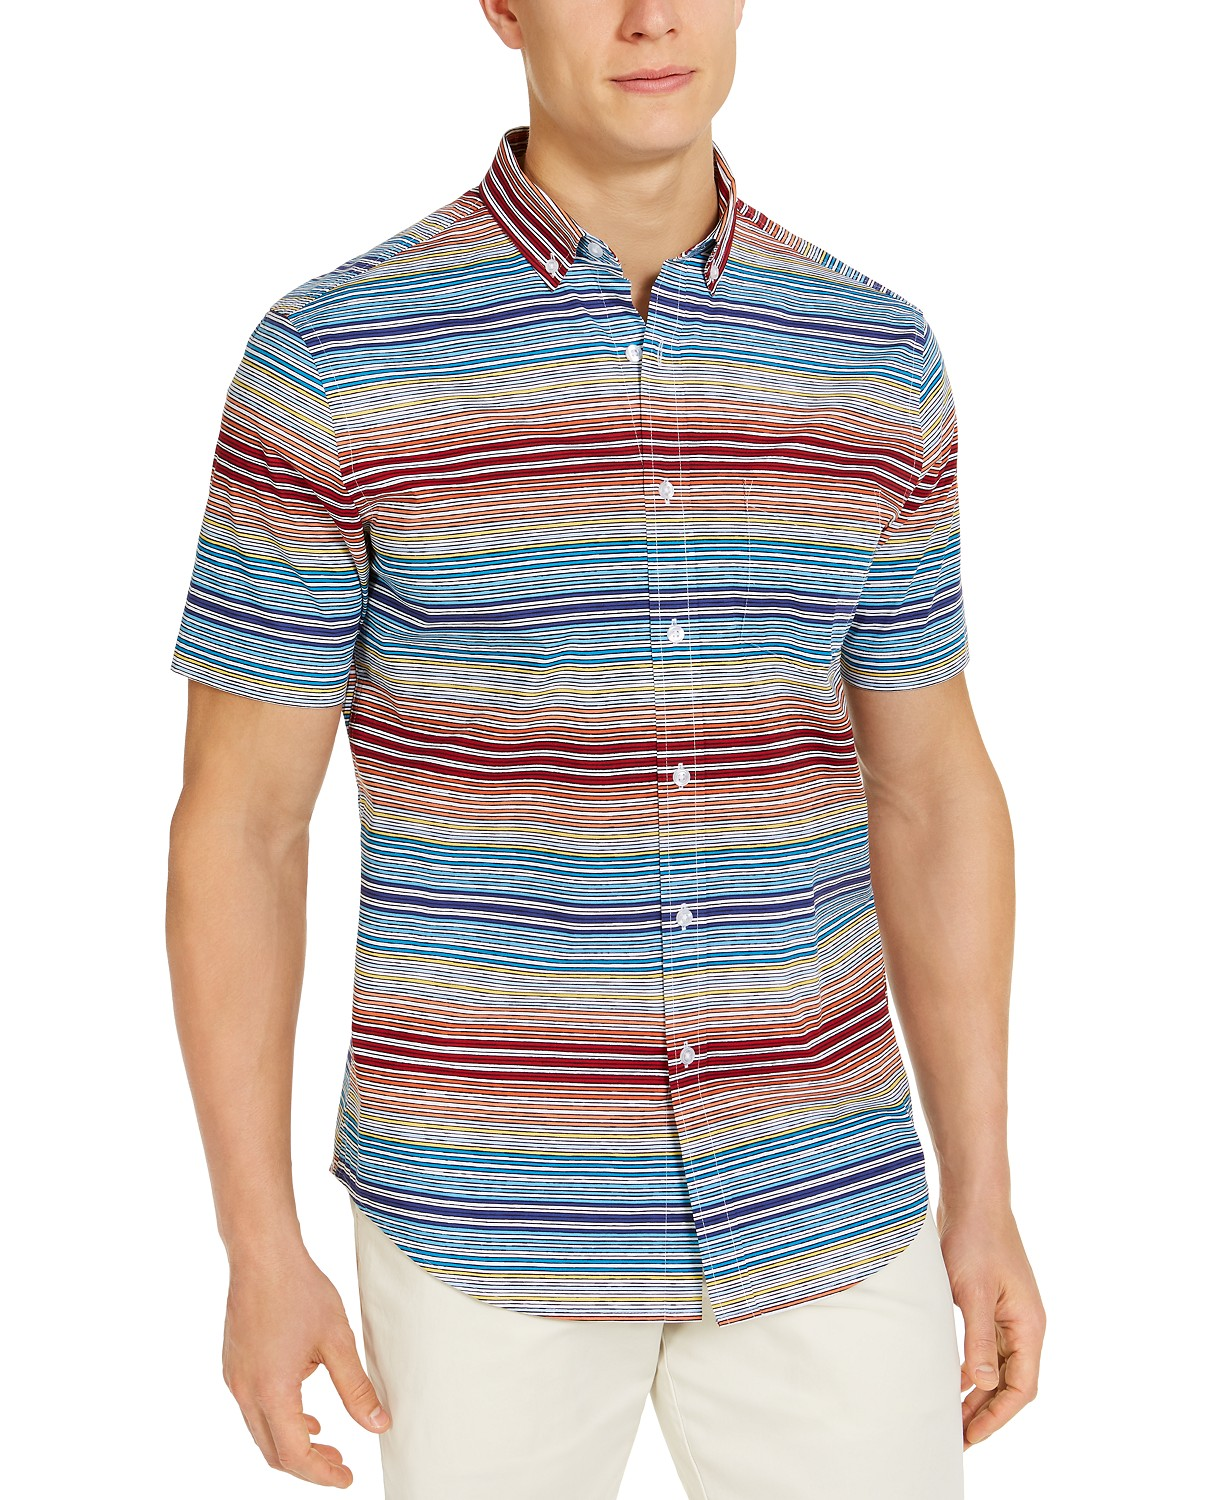 Club Room Men's SoCal Stripe Short Sleeve Shirt, Created for Macy's